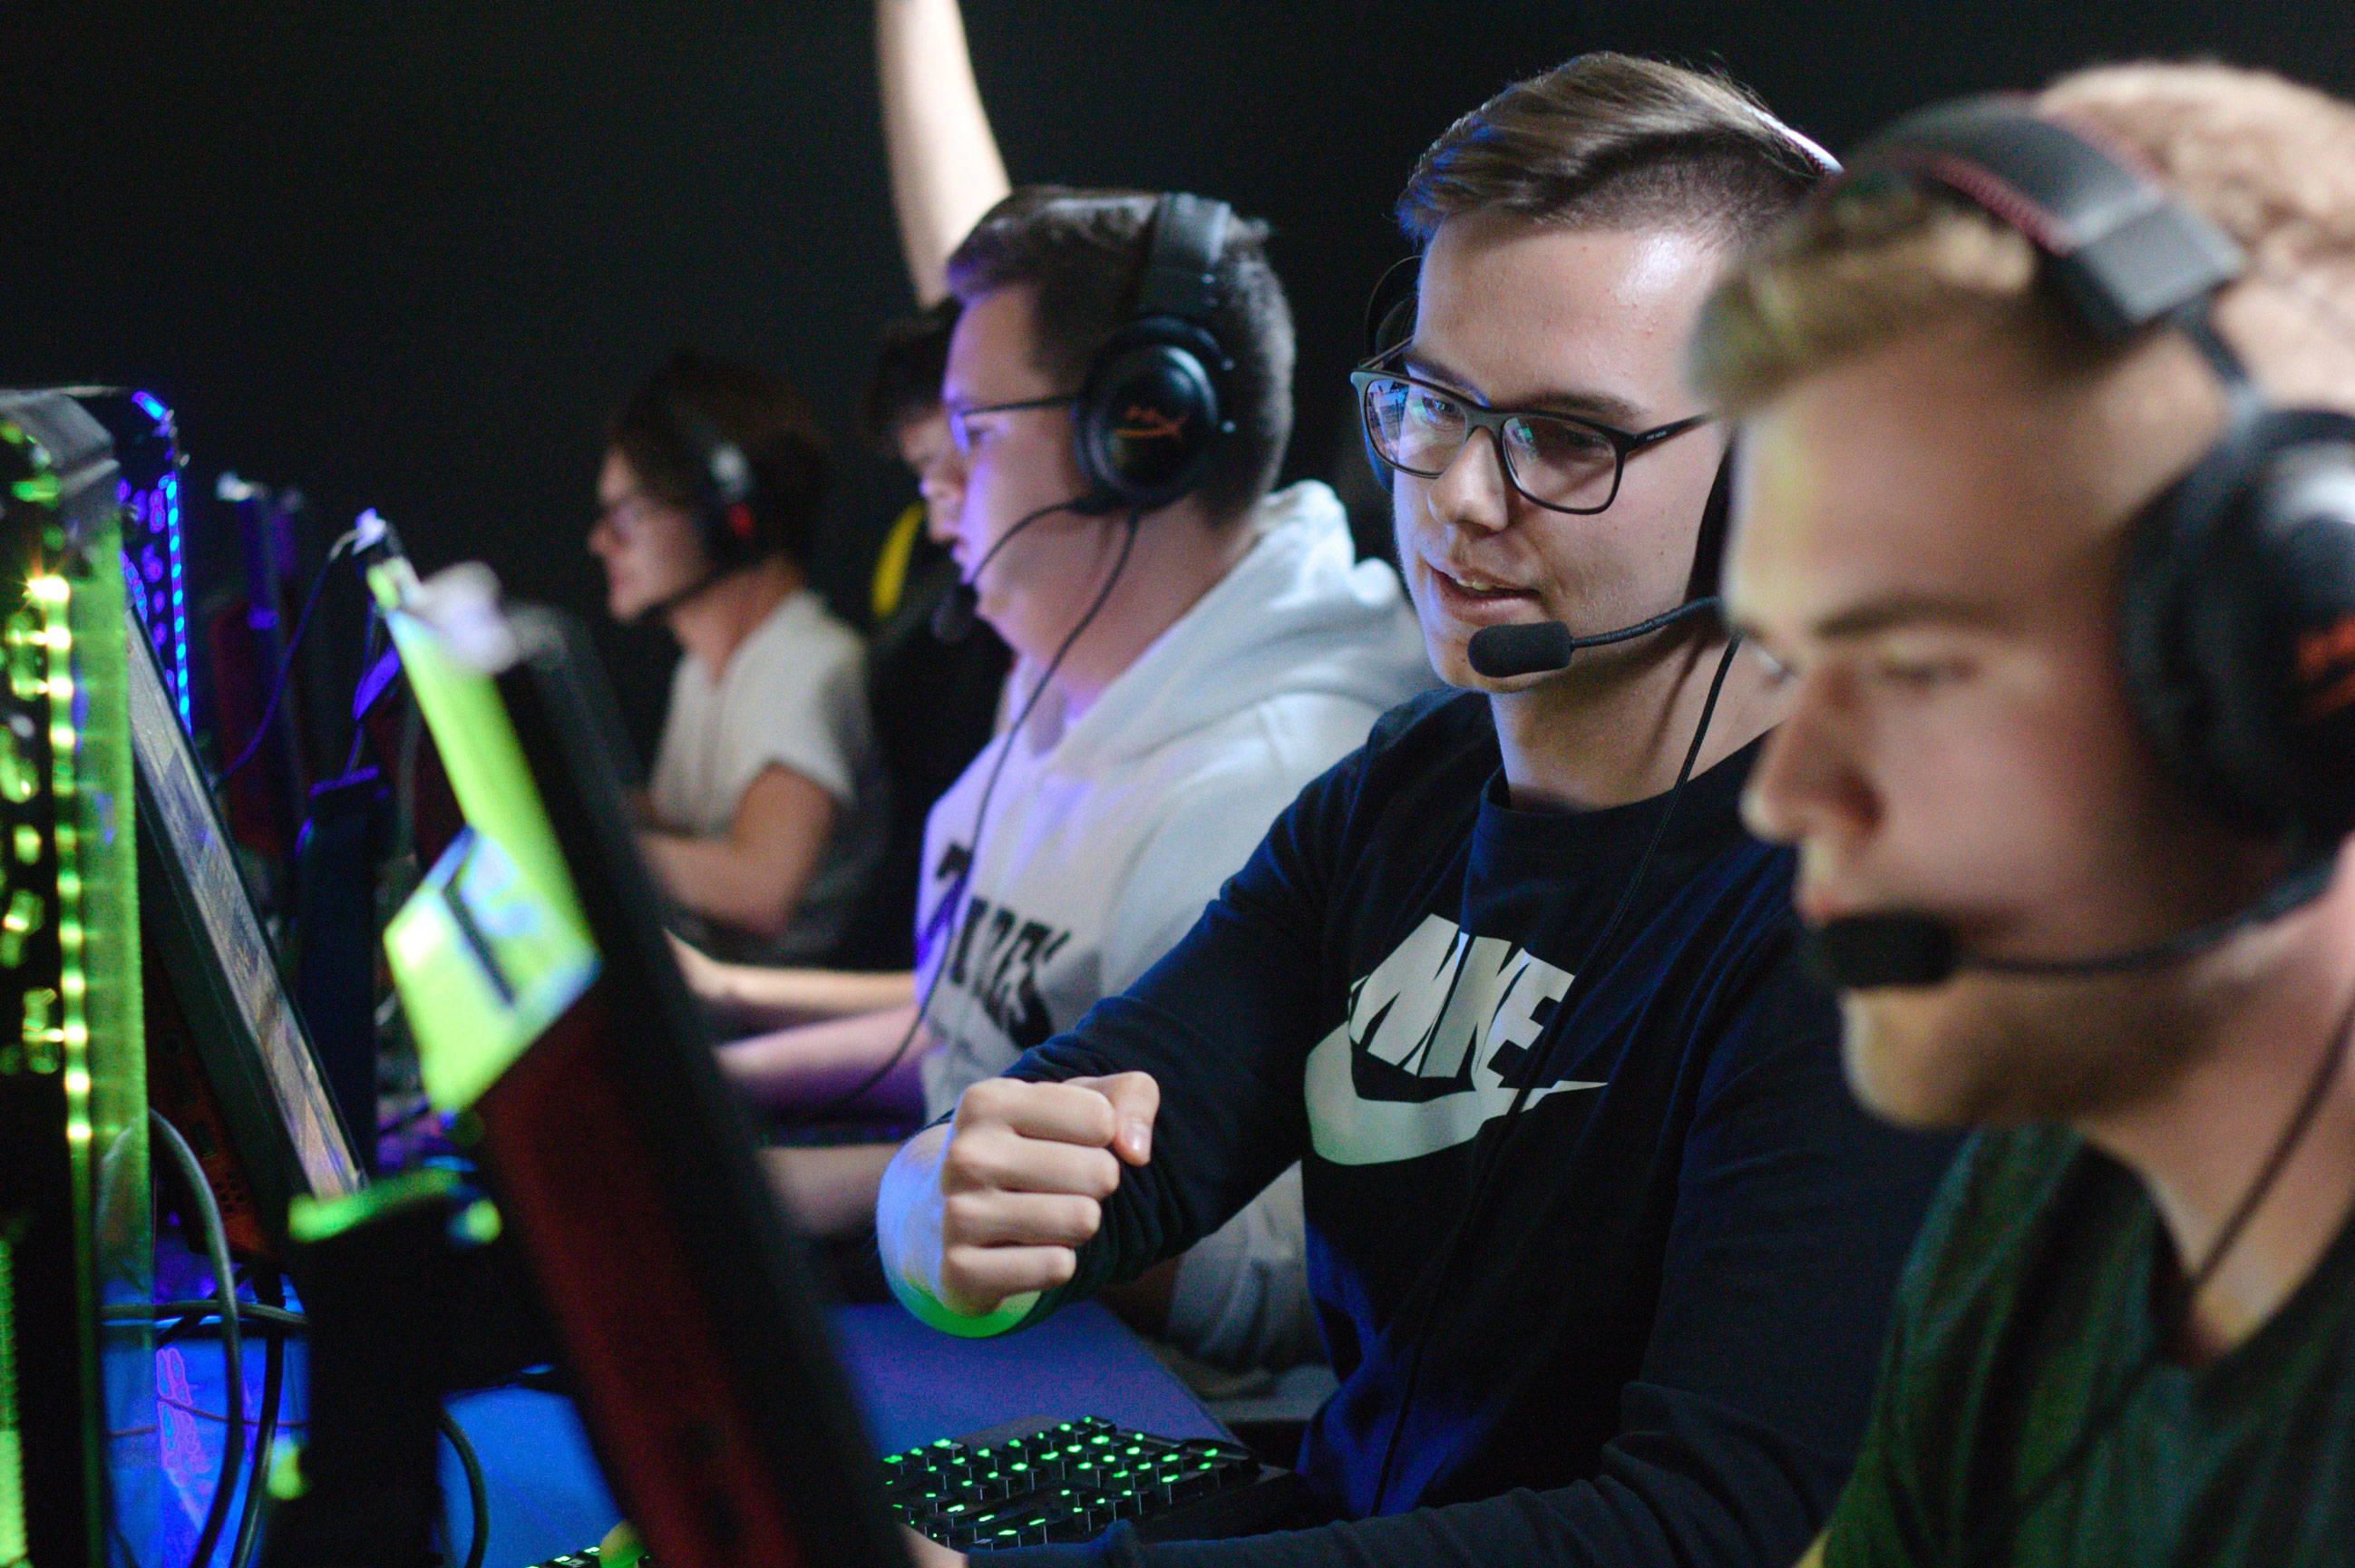 Mexico leads the digital gaming market in Latin America